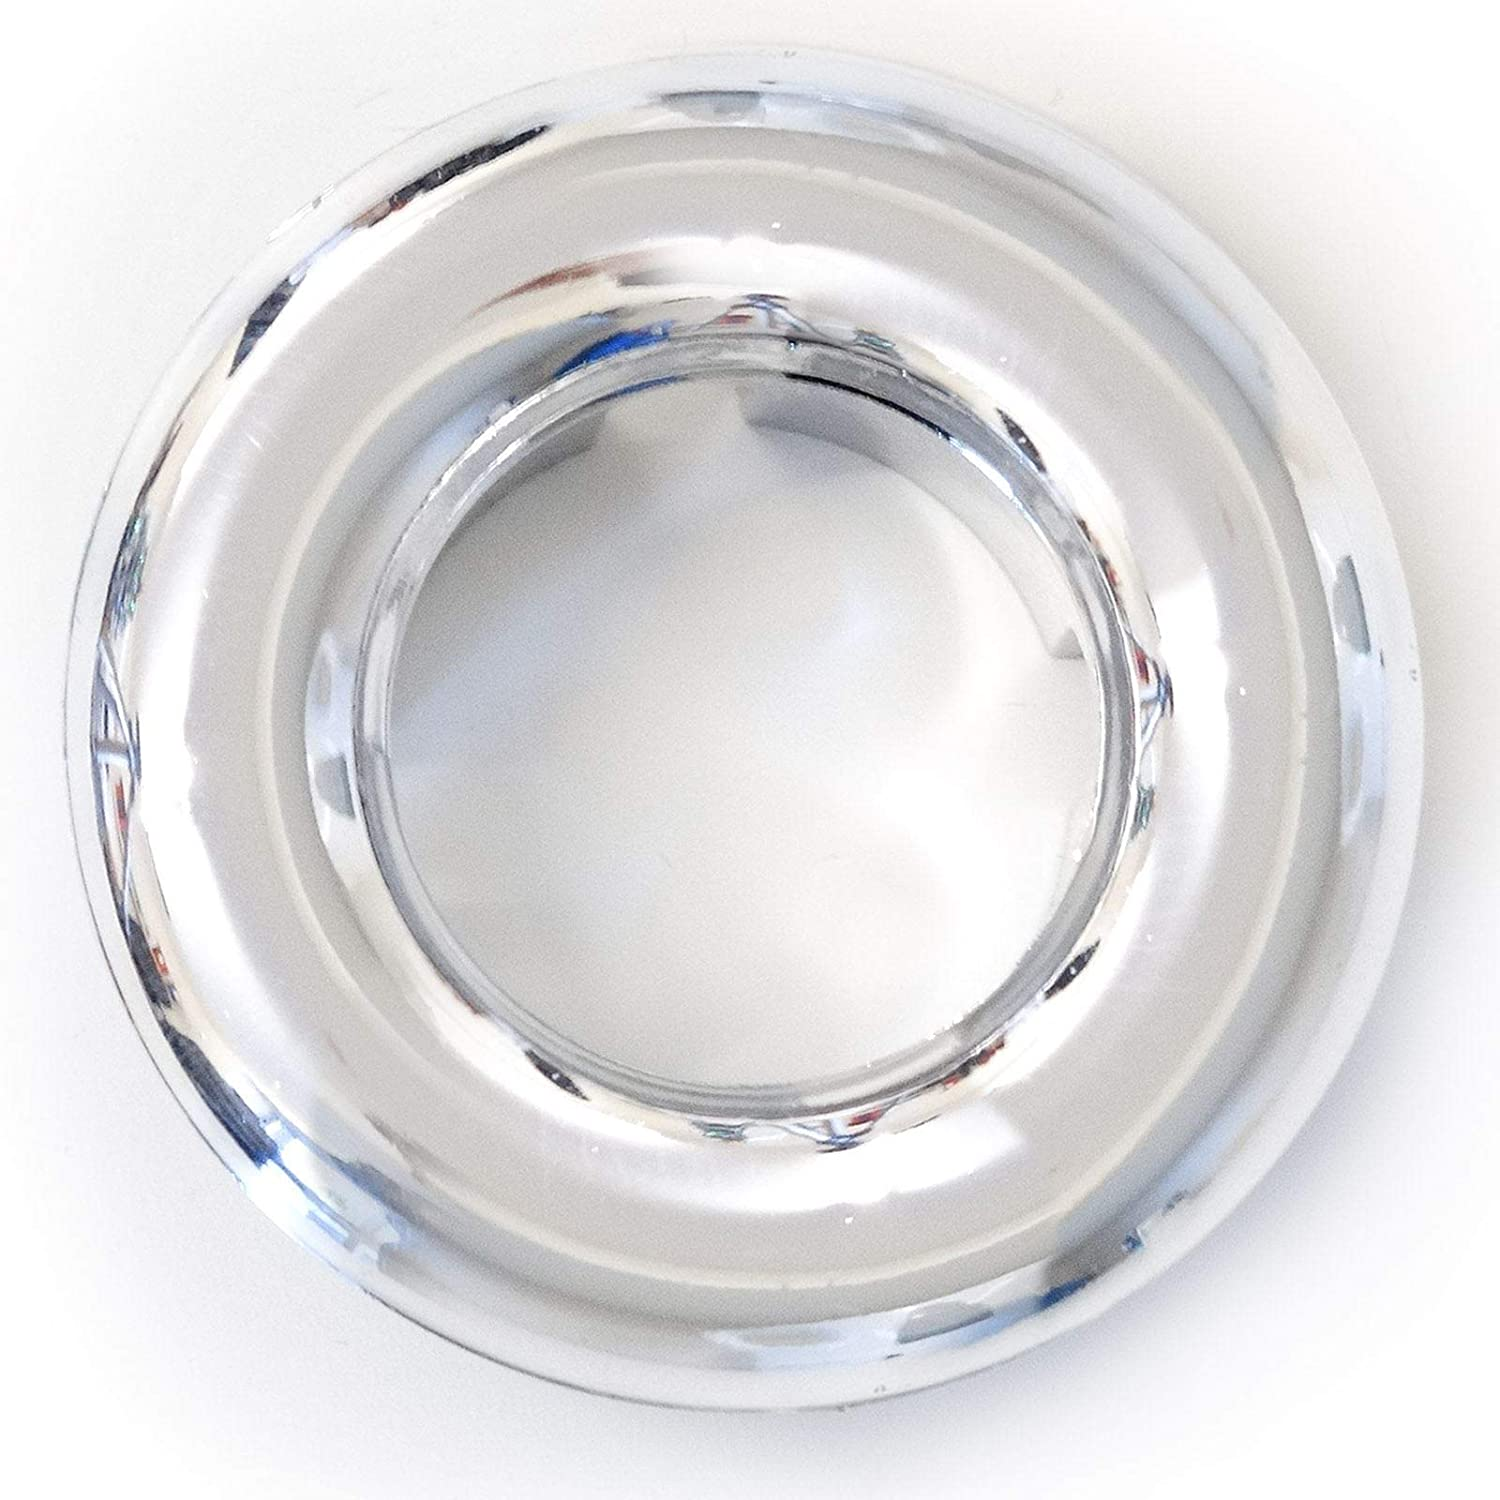 HomeCentre® 1 x Quality 24mm Chrome Bathroom Kitchen Basin Sink Overflow Hole Cover Ring Bolting Darts